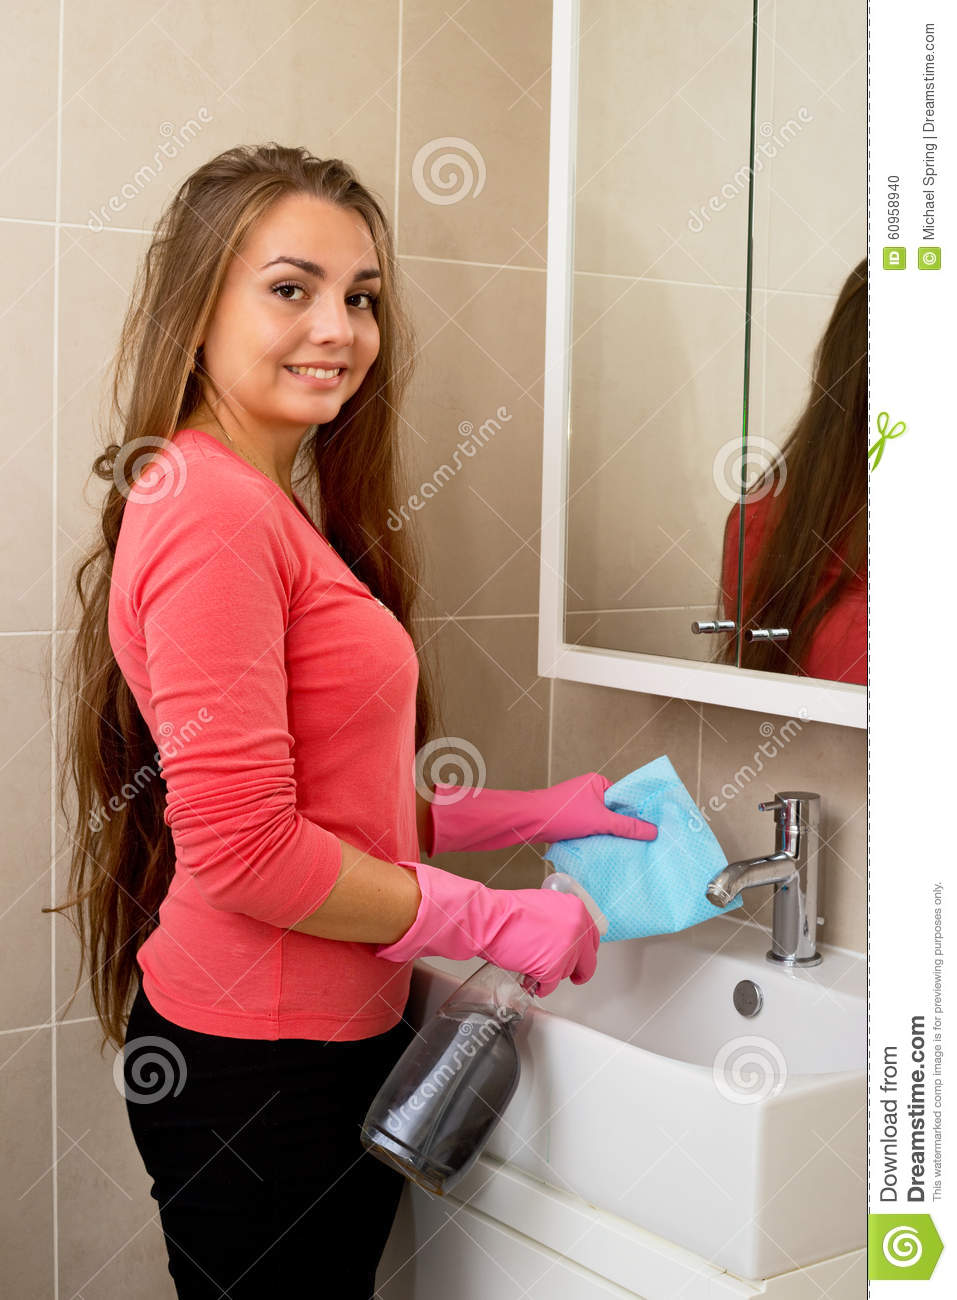 Cleaning Bathroom Stock Photo Image 60958940